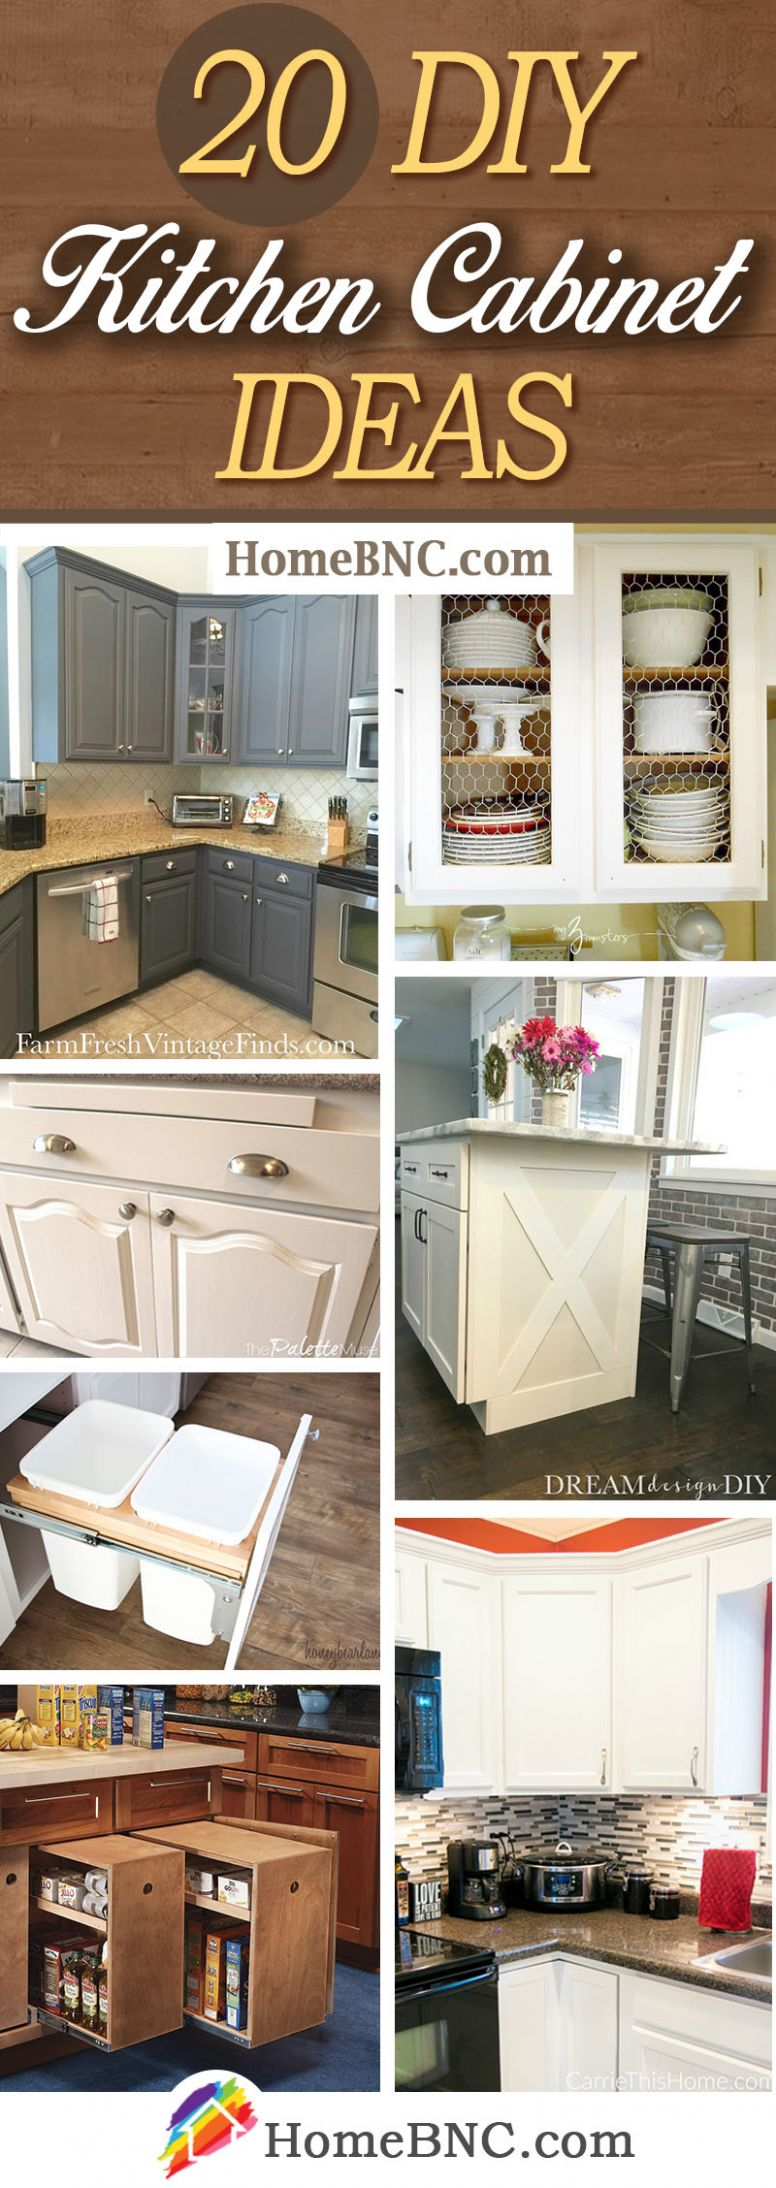 11 Best DIY Kitchen Cabinet Ideas and Designs for 1111 - kitchen ideas diy